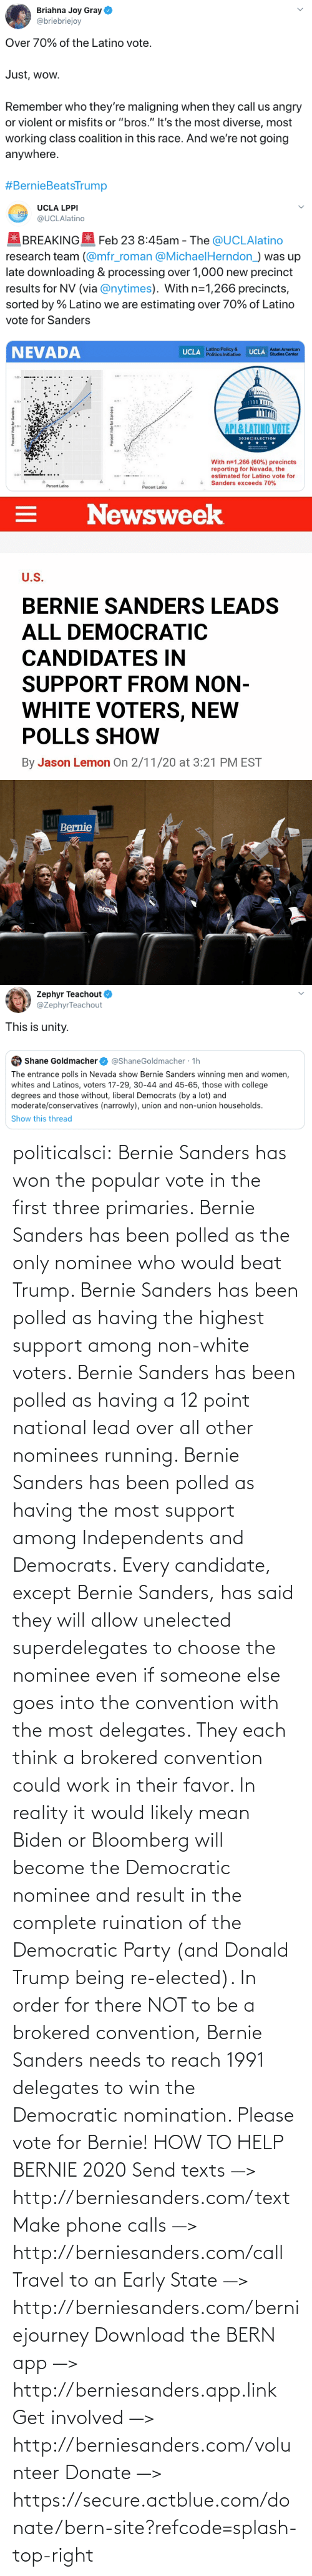 Vote For: politicalsci: Bernie Sanders has won the popular vote in the first three primaries. Bernie Sanders has  been polled as the only nominee who would beat Trump. Bernie Sanders  has been polled as having the highest support among non-white voters.  Bernie Sanders has been polled as having a 12 point national lead over  all other nominees running. Bernie Sanders has been polled as having the most support among Independents and Democrats.  Every candidate, except Bernie Sanders, has said they will allow  unelected superdelegates to choose the nominee even if someone else goes  into the convention with the most delegates. They each think a brokered  convention could work in their favor. In  reality it would likely mean Biden or Bloomberg will become the  Democratic nominee and result in the complete ruination of the  Democratic Party (and Donald Trump being re-elected). In order for there  NOT to be a brokered  convention, Bernie Sanders needs to reach 1991 delegates to win the  Democratic  nomination. Please vote for Bernie!  HOW TO HELP BERNIE 2020 Send texts —> http://berniesanders.com/text  Make phone calls —> http://berniesanders.com/call  Travel to an Early State —> http://berniesanders.com/berniejourney  Download the BERN app —> http://berniesanders.app.link  Get involved —> http://berniesanders.com/volunteer Donate —> https://secure.actblue.com/donate/bern-site?refcode=splash-top-right